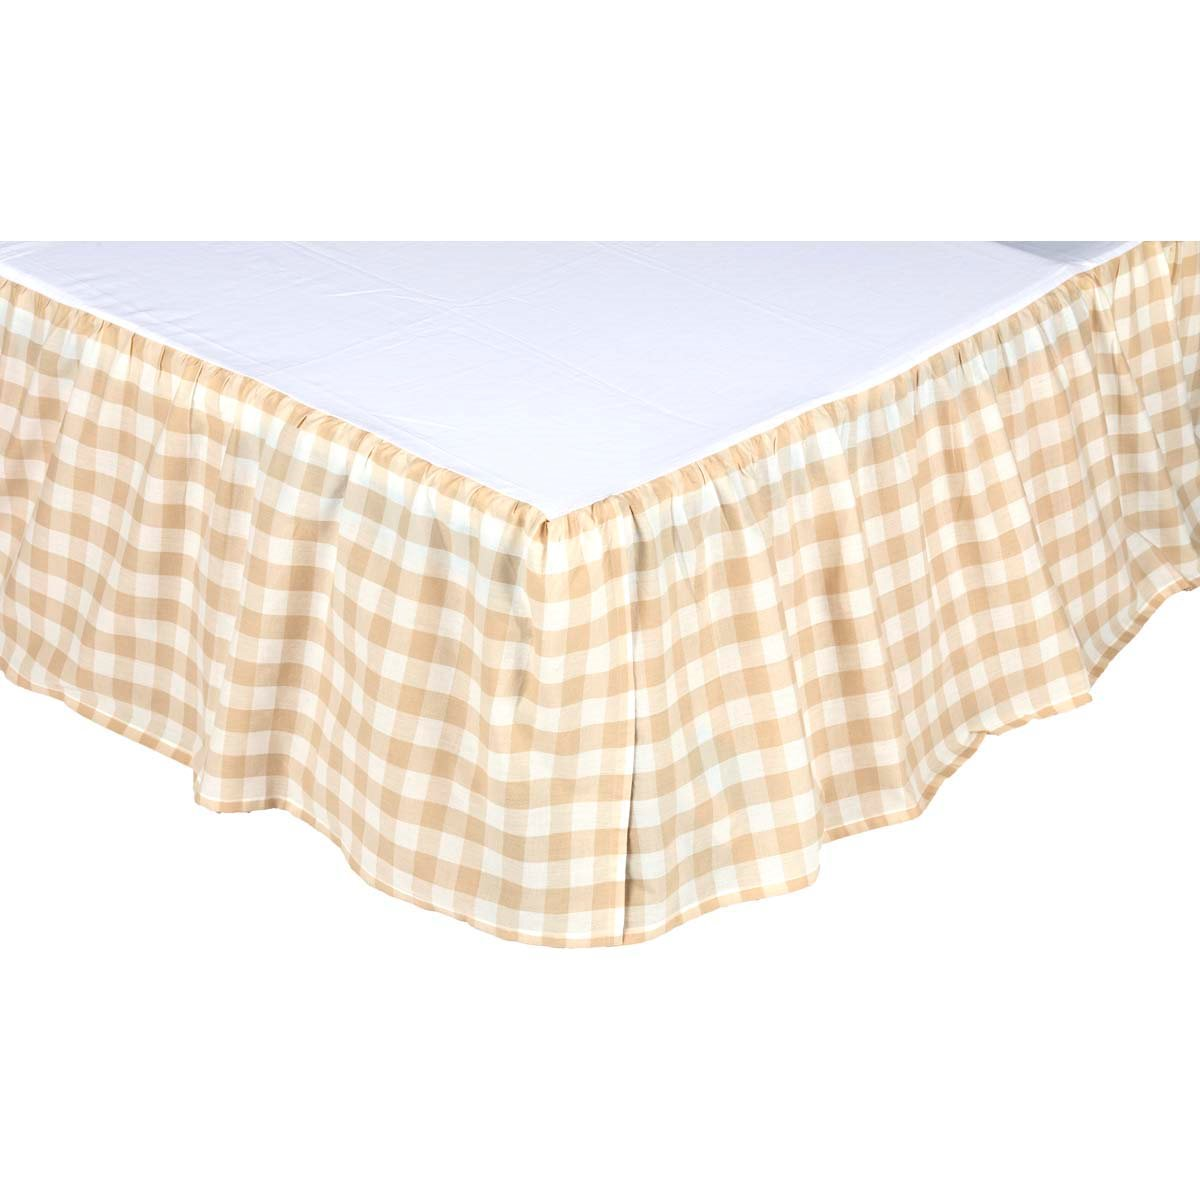 Annie Buffalo Tan Check King Bed Skirt 78x80x16